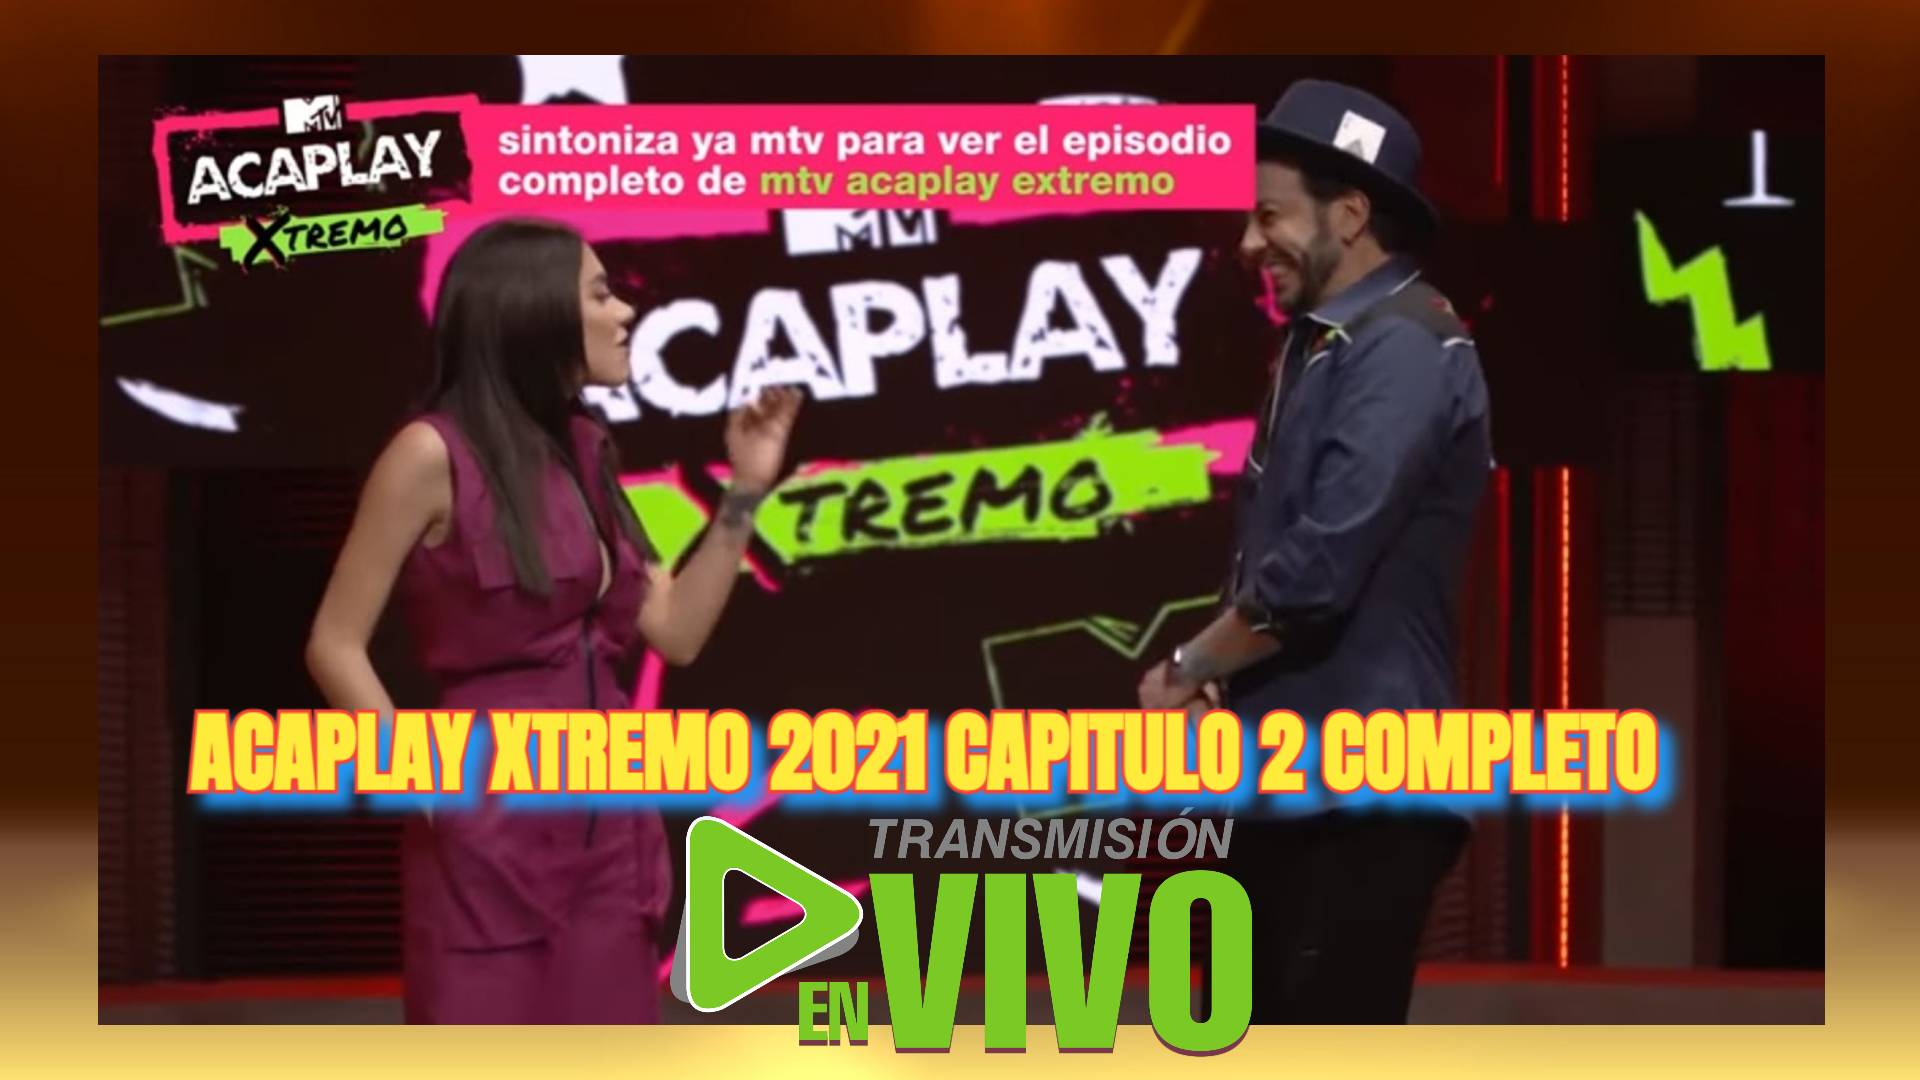 MIRAR ACAPLAY XTREMO 2021 CAPITULO 2 COMPLETO